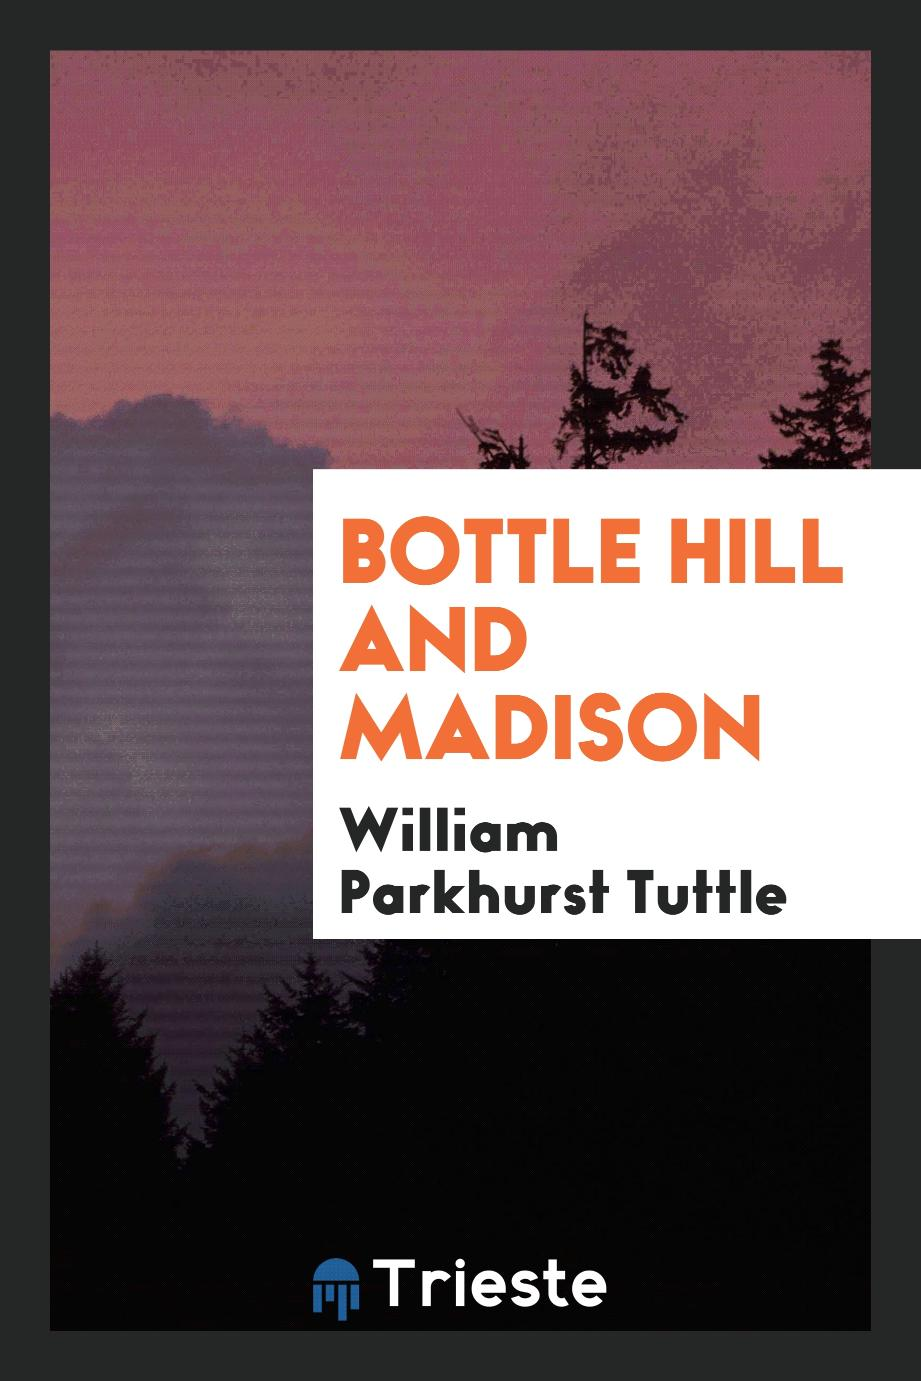 Bottle Hill and Madison